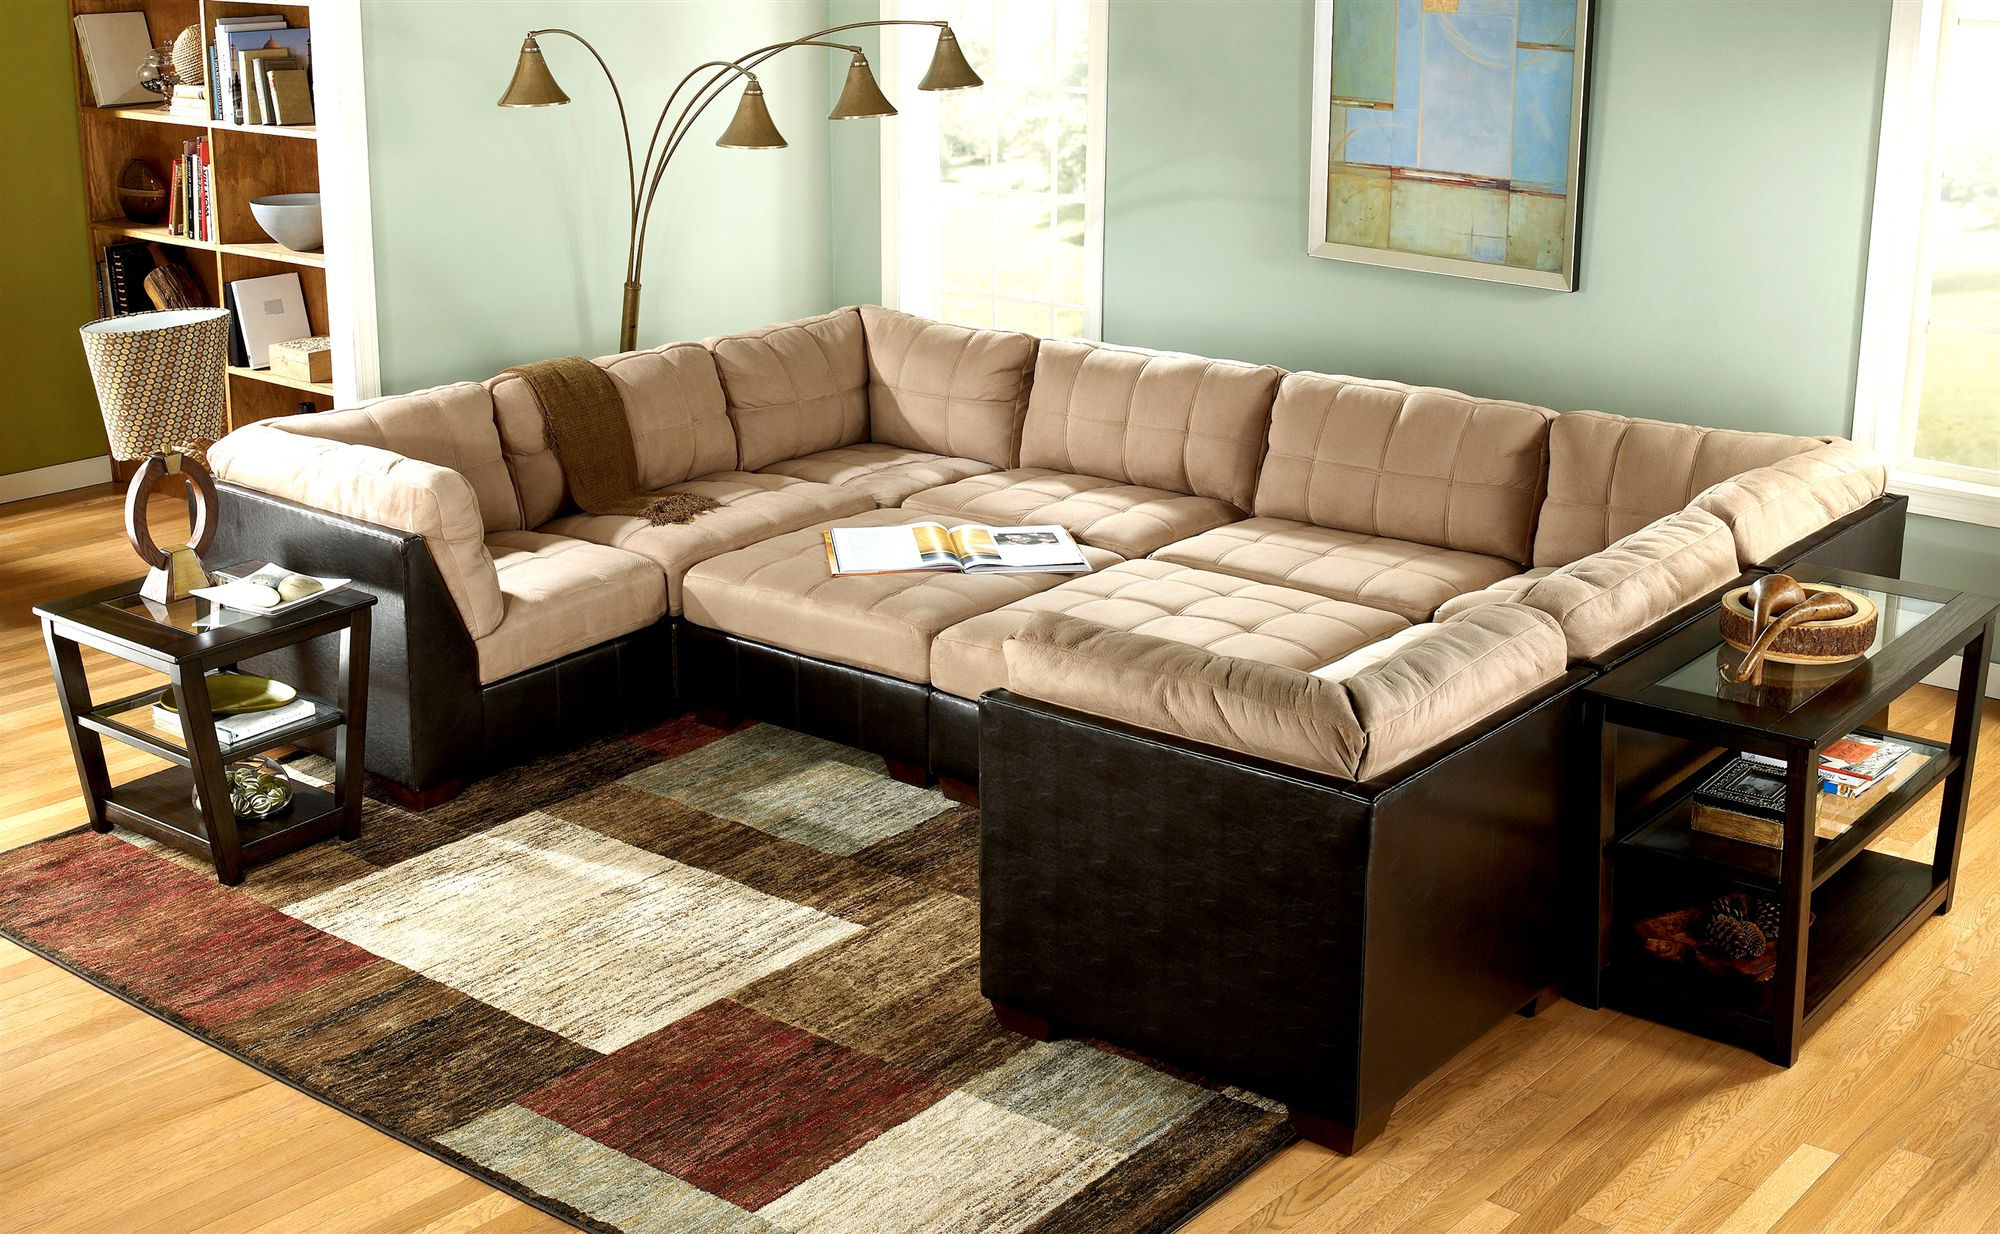 Living room ideas with sectionals sofa for small living for Couch designs for living room